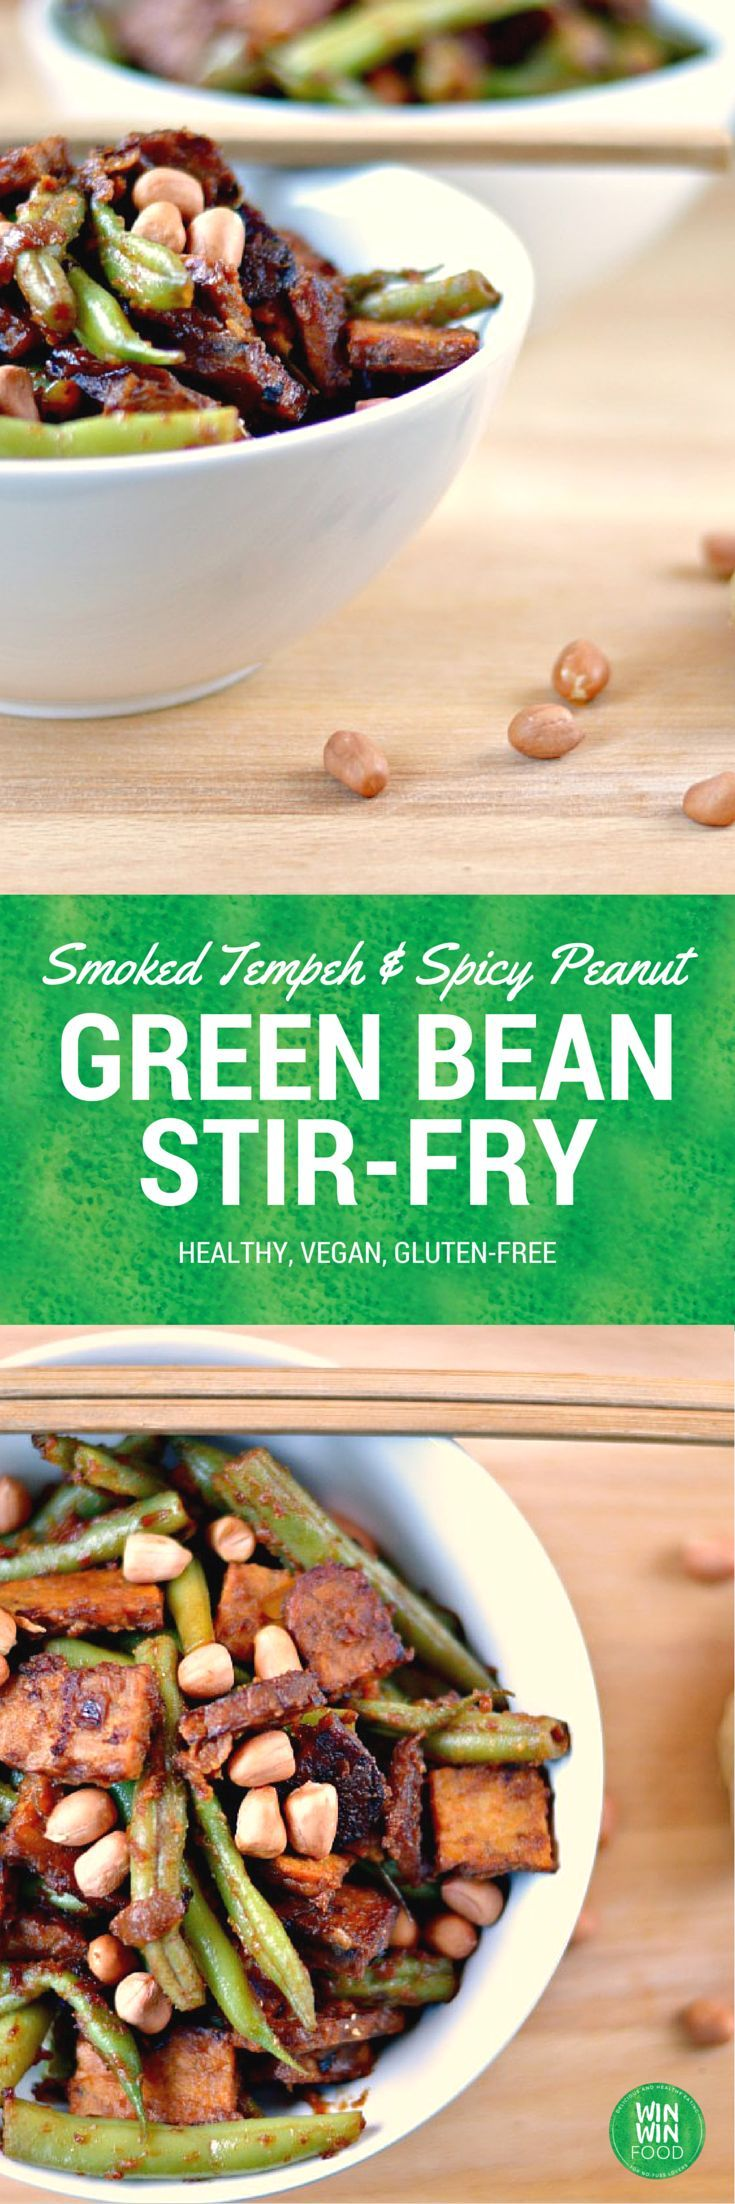 Green Bean Stir Fry | WIN-WINFOOD.com #healthy #vegan #glutenfree